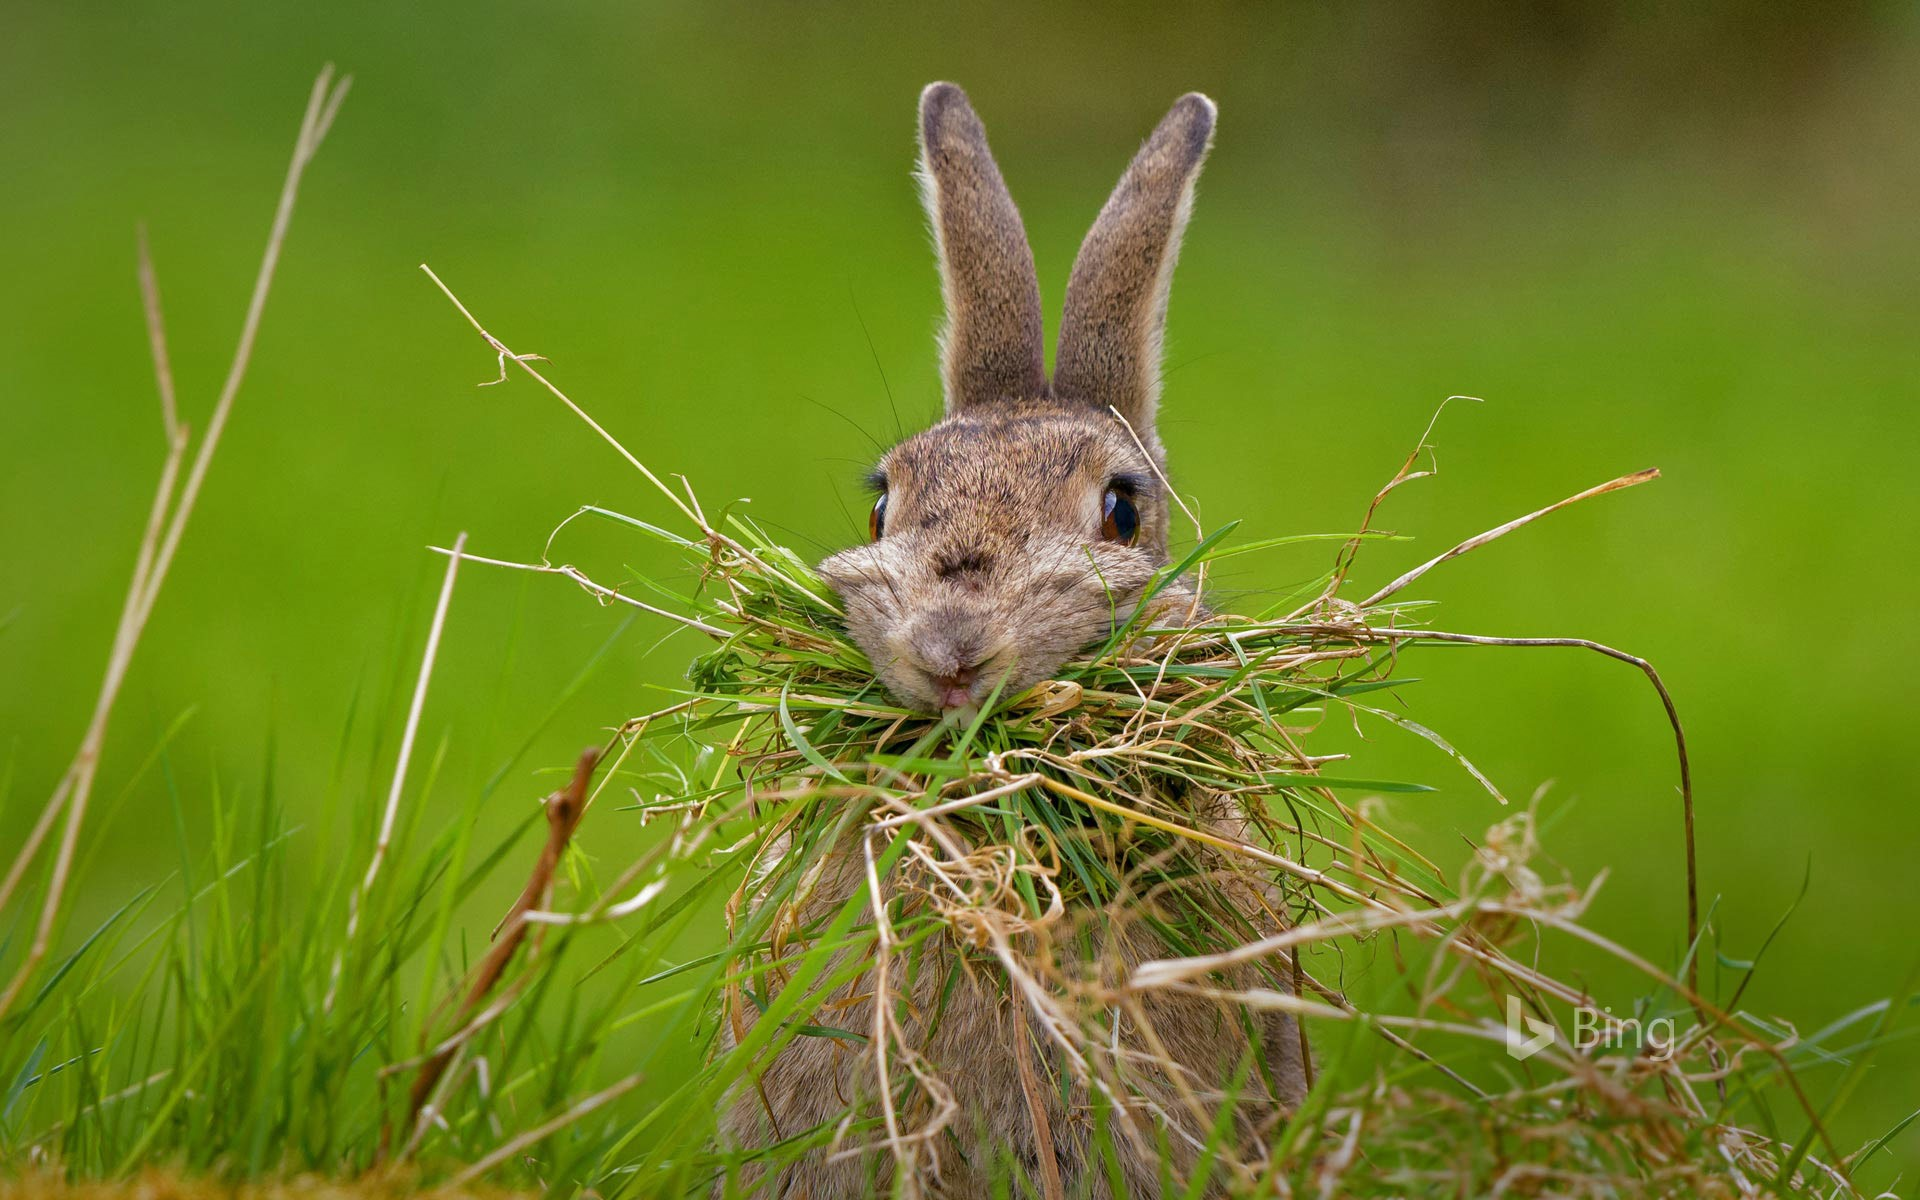 A rabbit building a nest